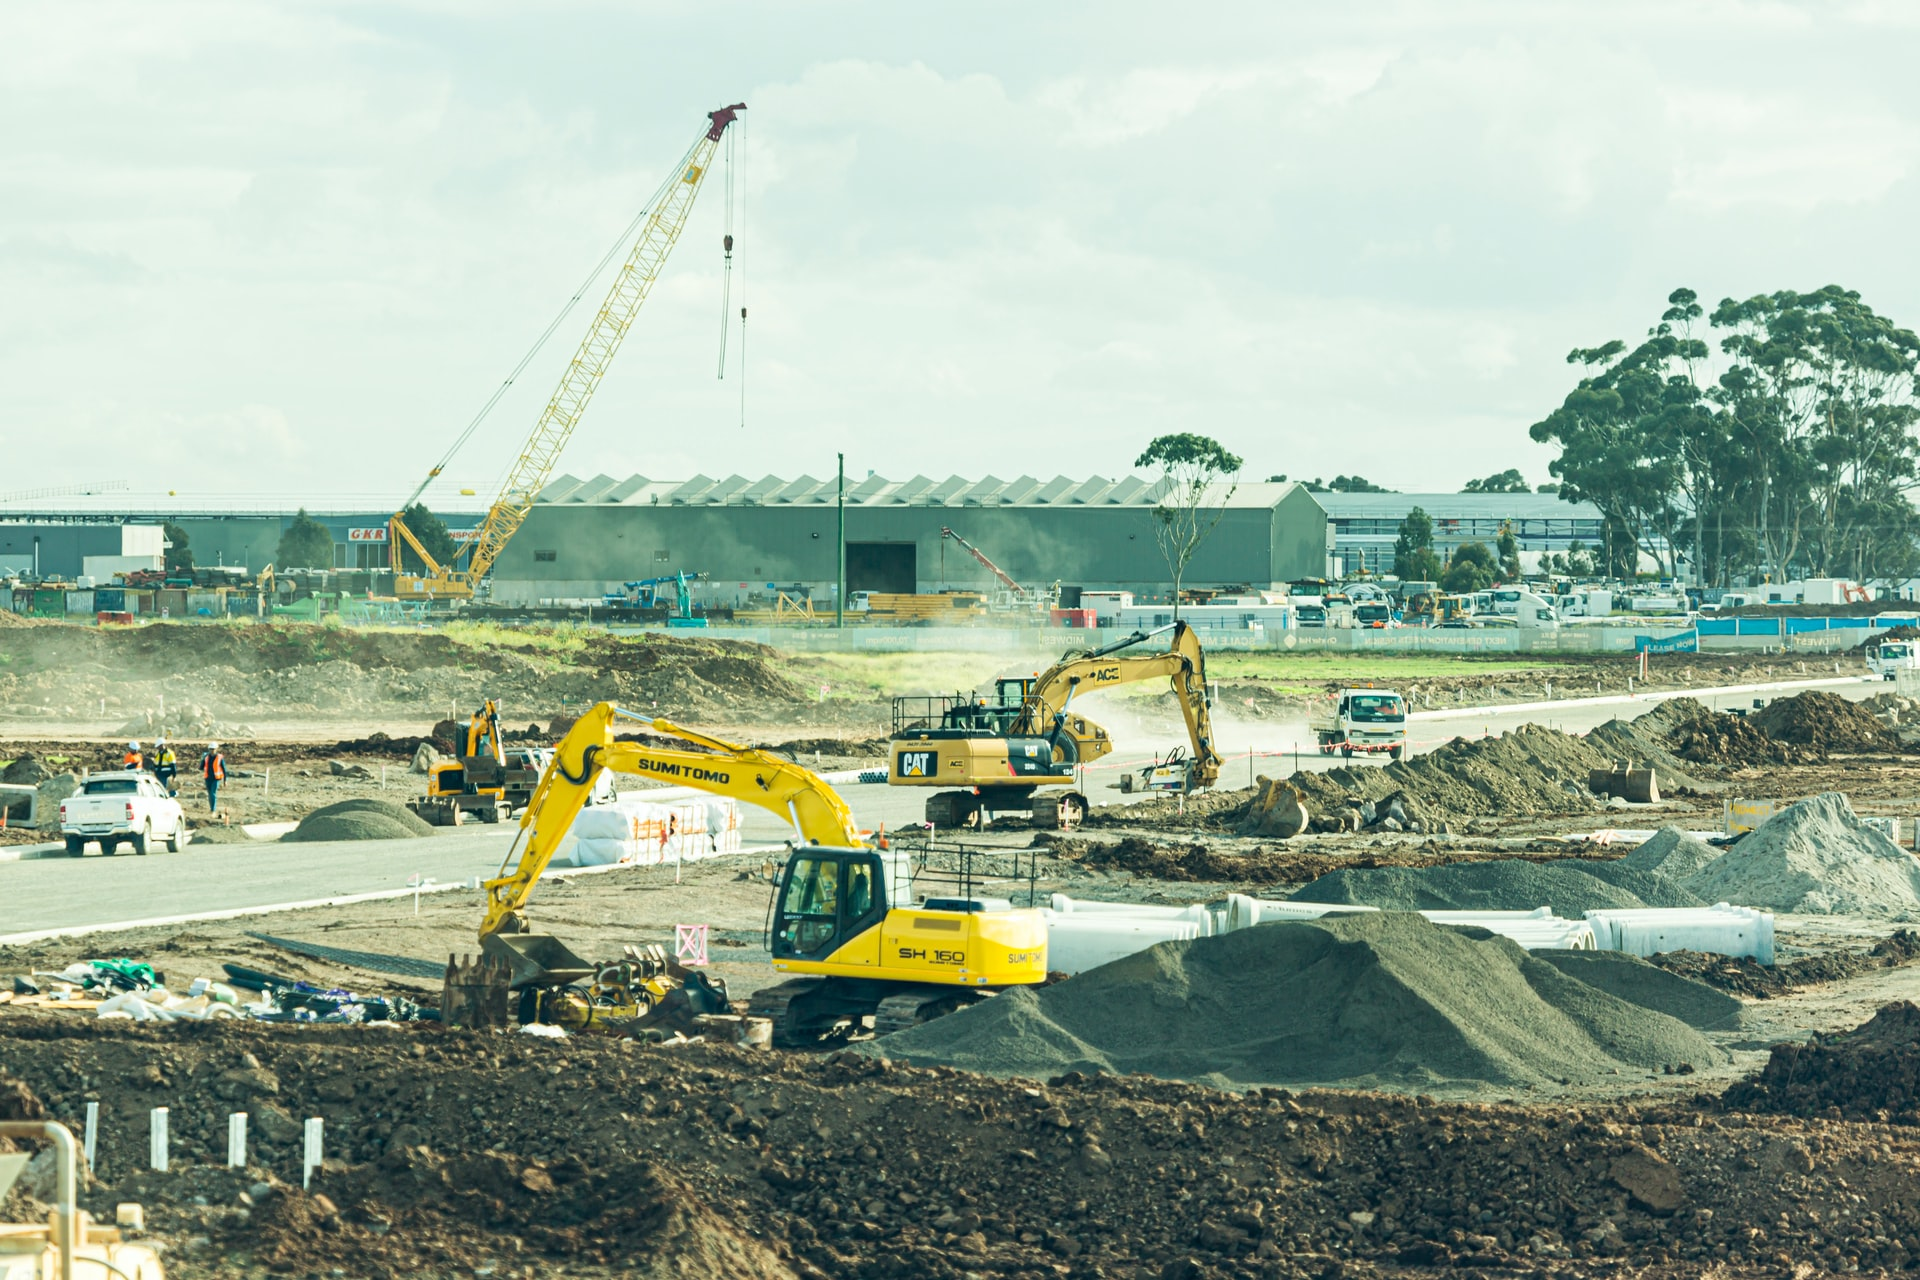 Photo of a construction site with large heavy equipment and dirt piles